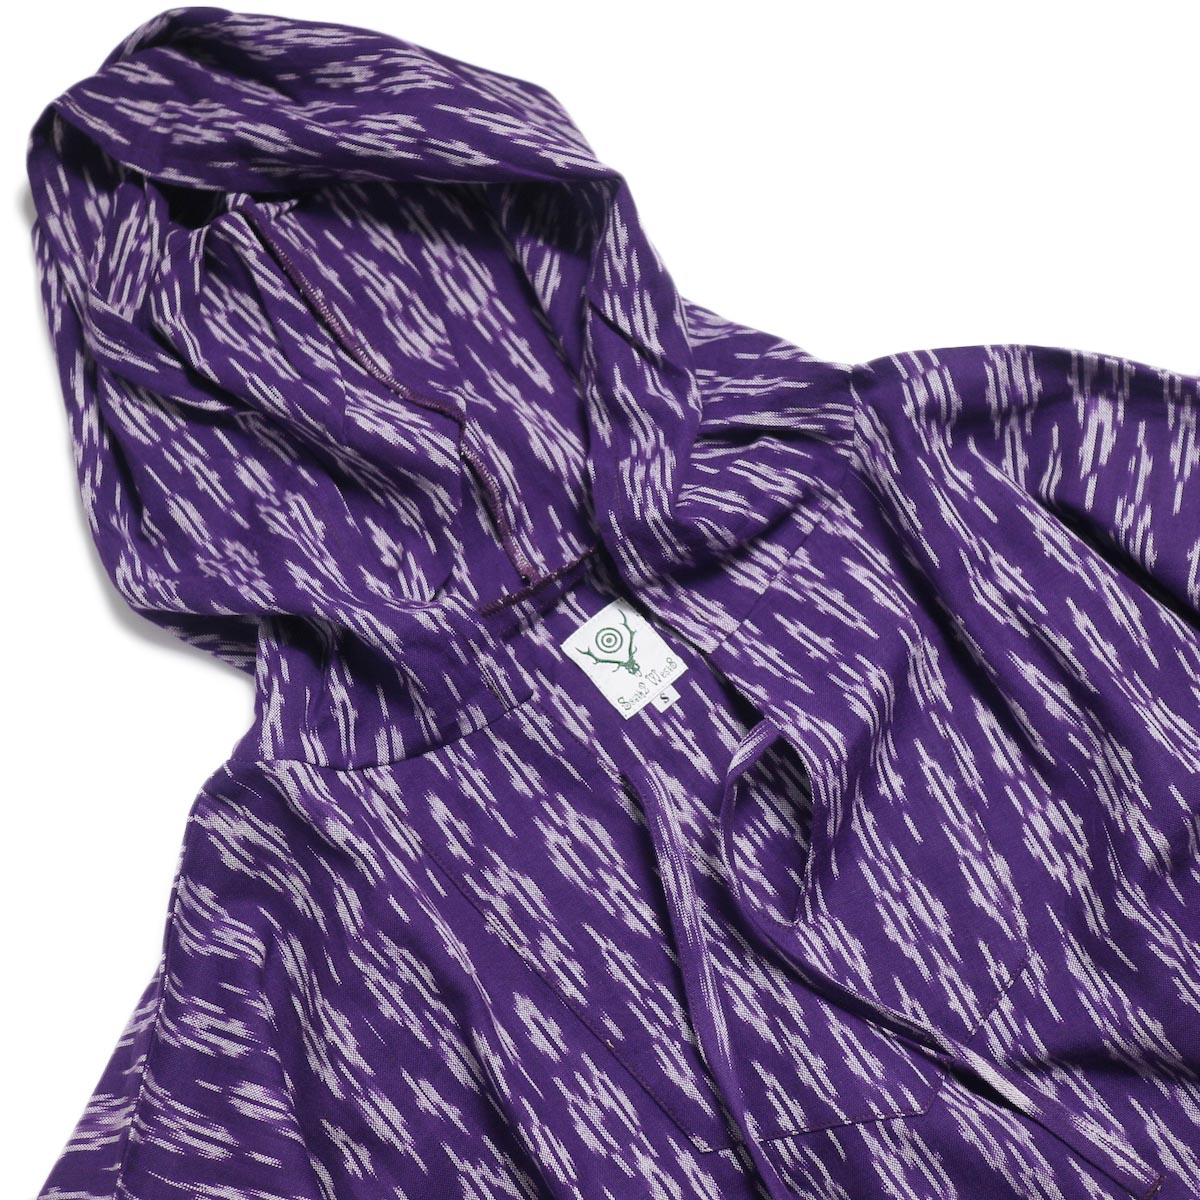 SOUTH2 WEST8 / Mexican Parka -Cotton Cloth / Splashed Pattern (Purple) 首周り